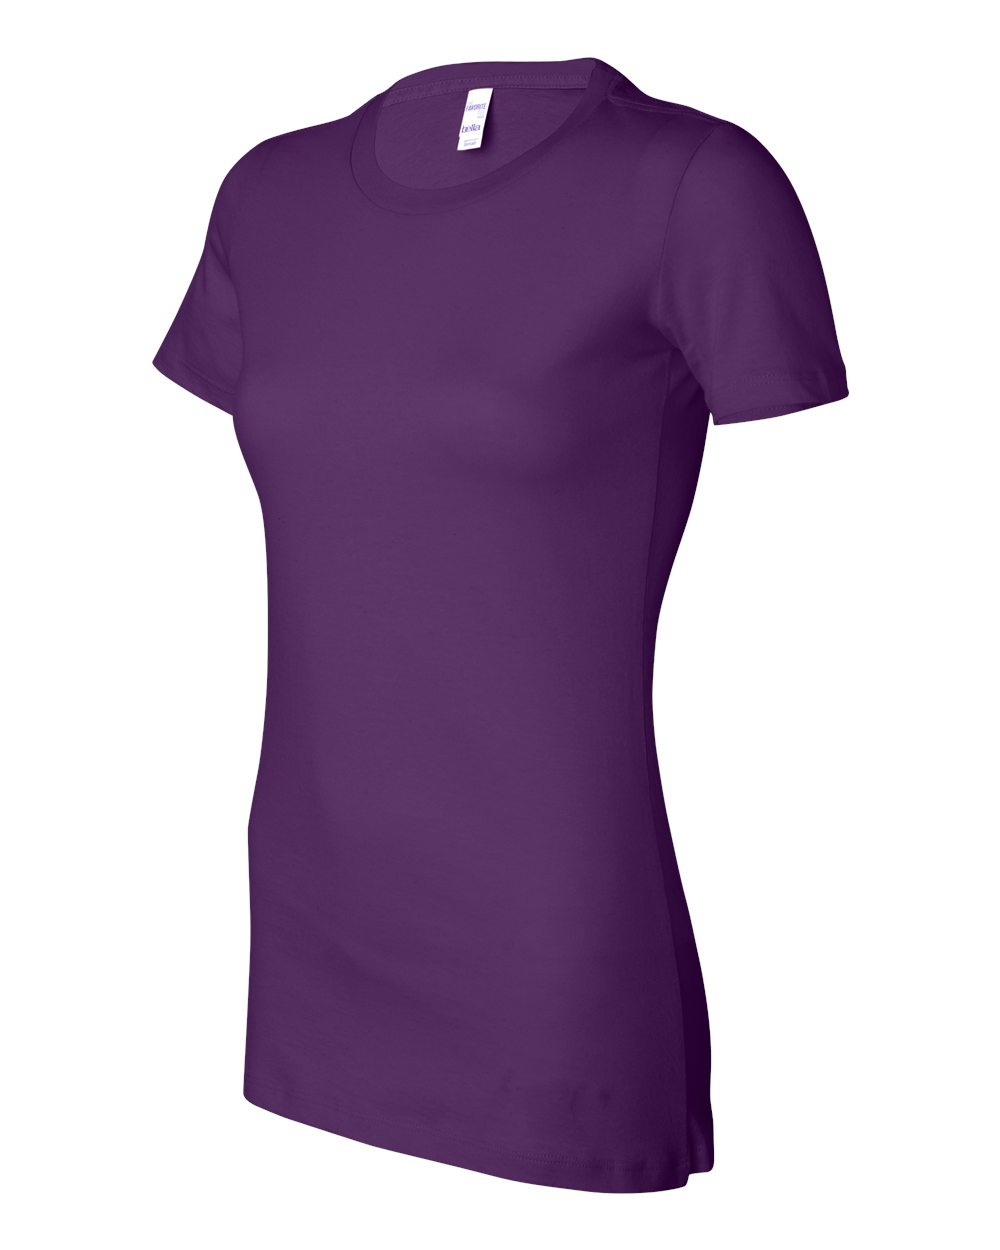 Bella-Canvas-Womens-The-Favorite-T-Shirt-6004-Size-S-2XL thumbnail 162